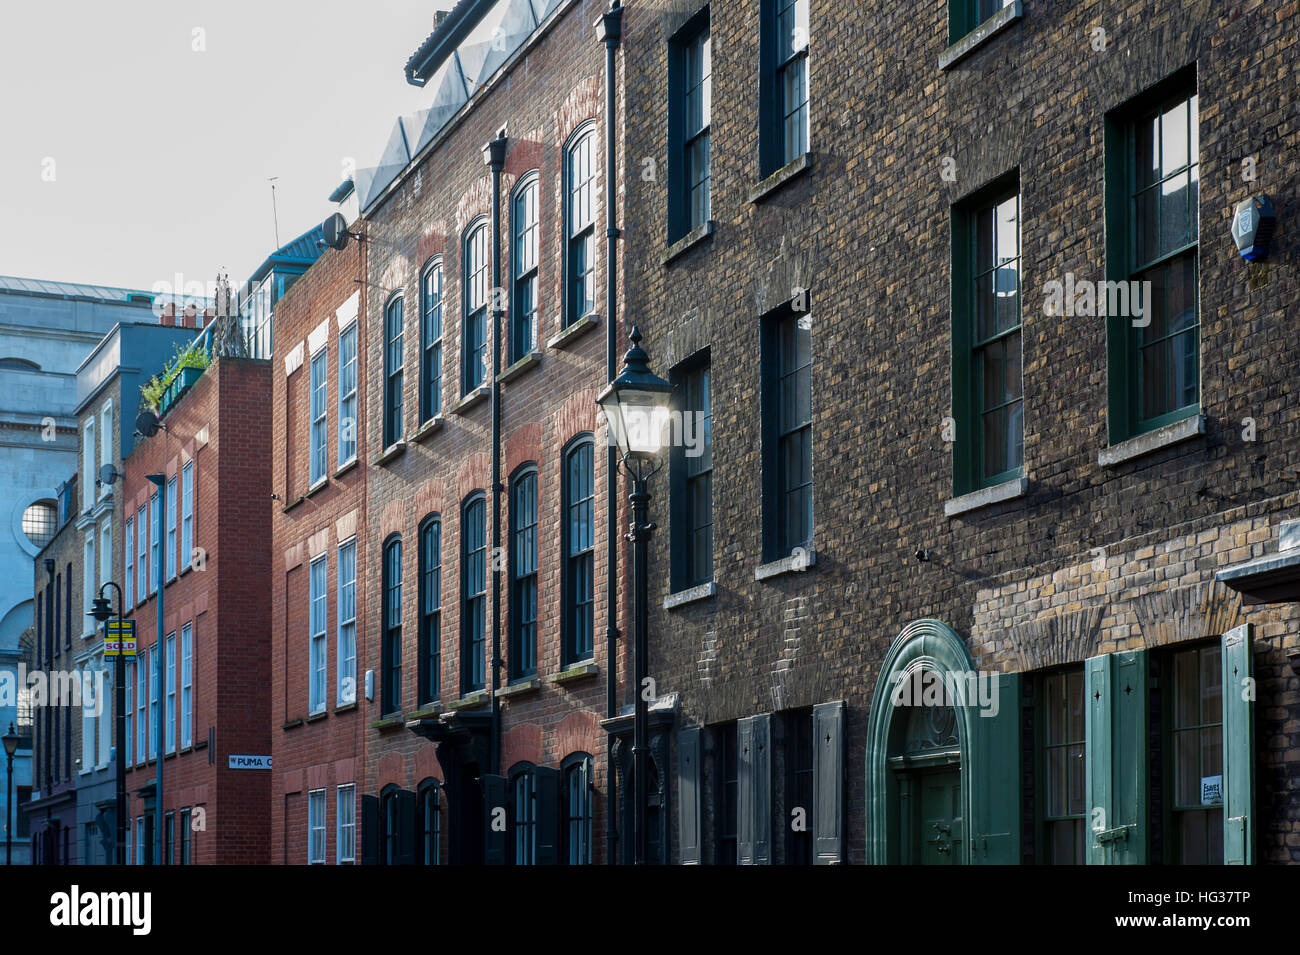 A row of houses in East London near Shoreditch Stock Photo